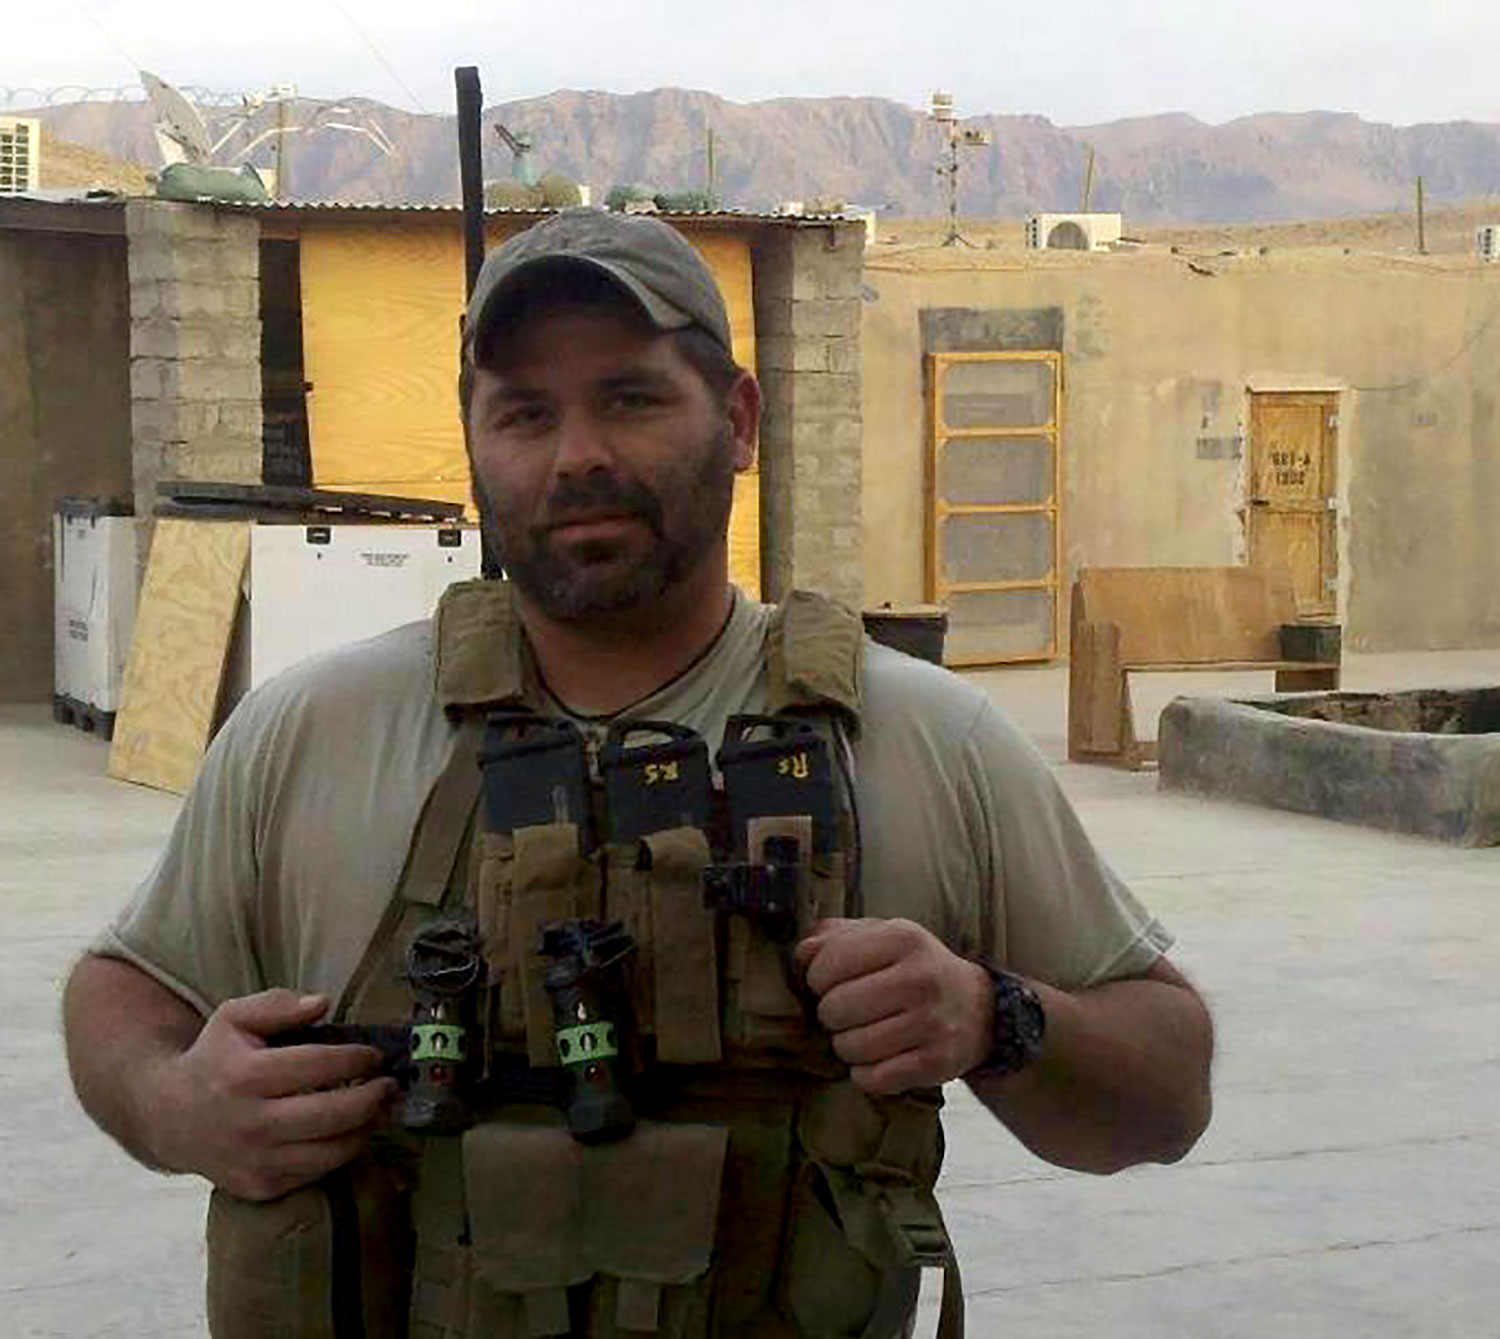 Army Sgt. 1st Class Riley G. Stephens, 39, of Tolar, Texas, assigned to the 1st Battalion, 3rd Special Forces Group (Airborne), died Sept. 28, 2012, in Wardak, Afghanistan, of wounds caused by enemy small-arms fire. Stephens is survived by his wife, Tiffany; three children, Austin, Morgan and Rylee Ann; parents, Michael and Joann; brother Ken; and a number of family members.